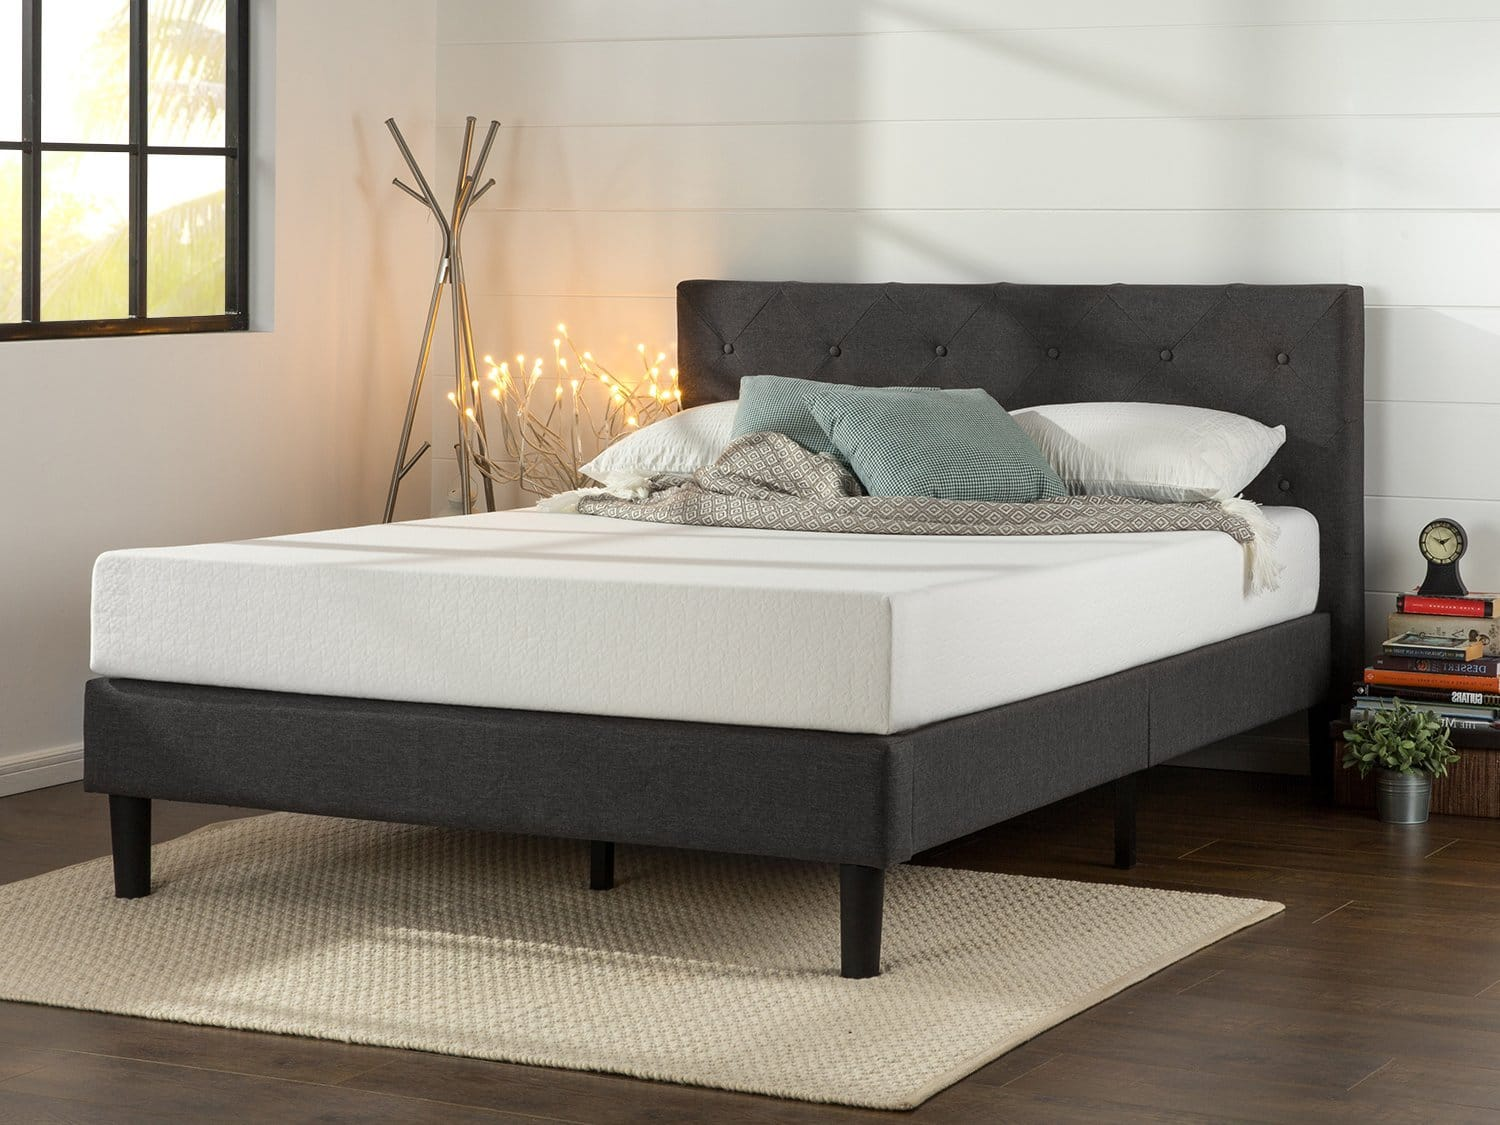 Vintage Zinus Upholstered Diamond Stitched Platform Bed Queen Slickdeals net